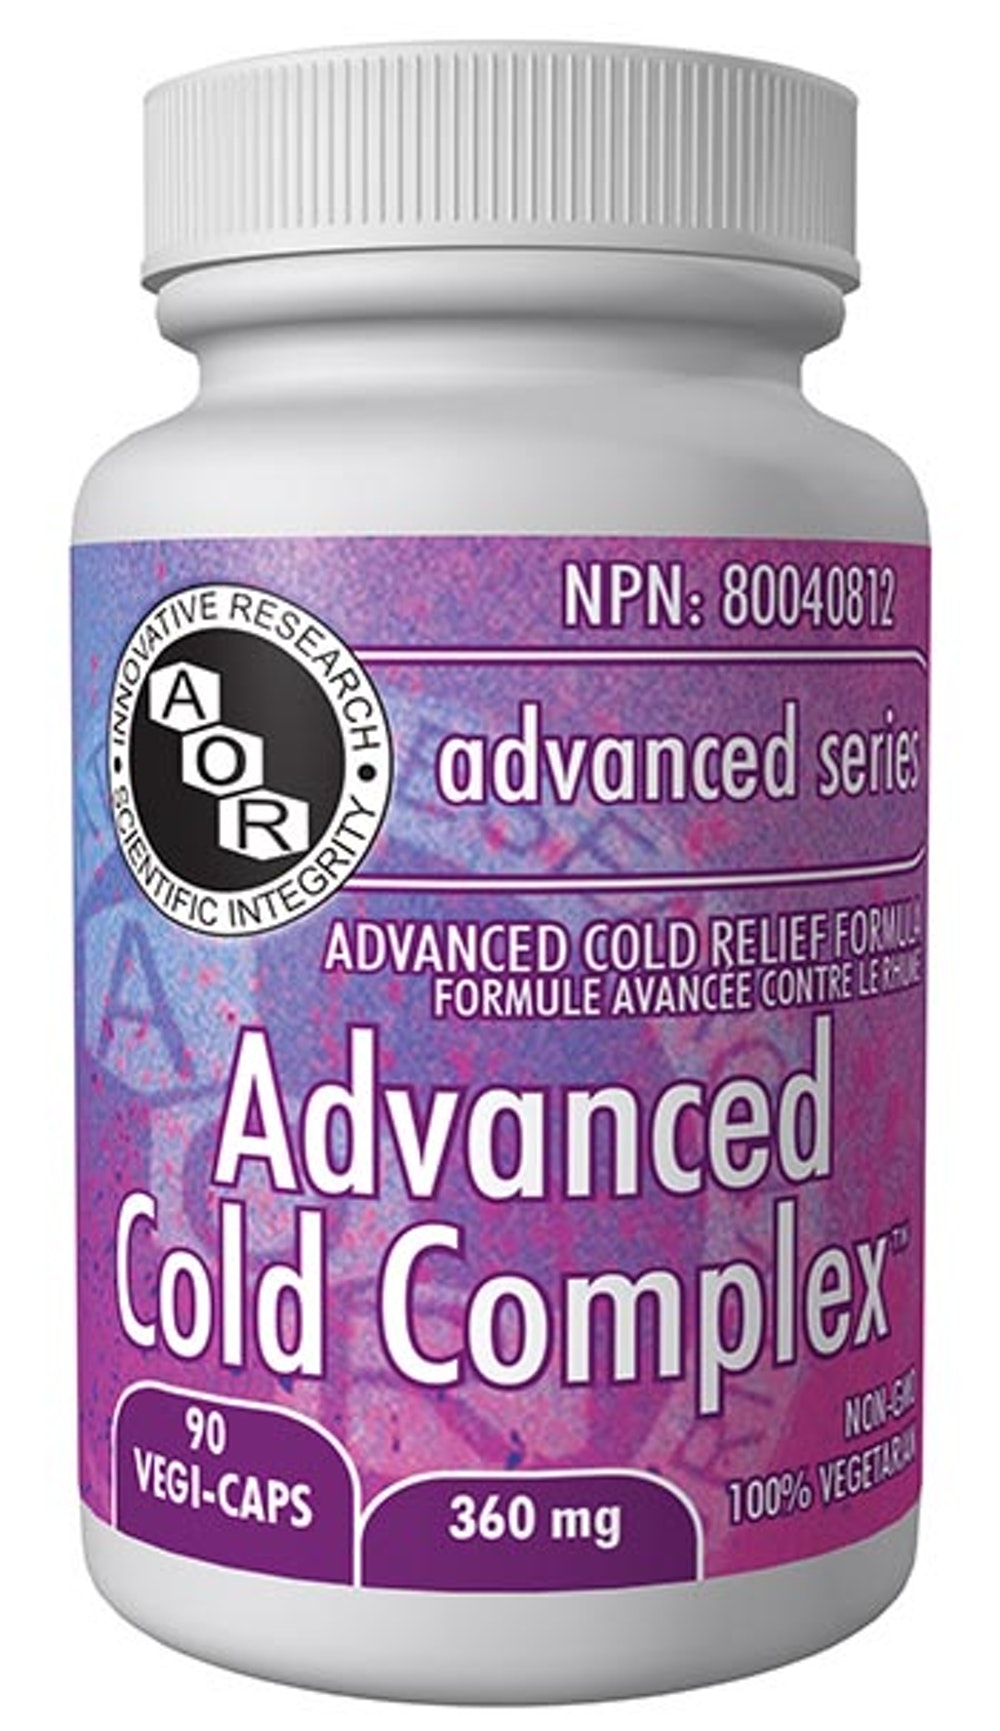 Advanced Cold Complex